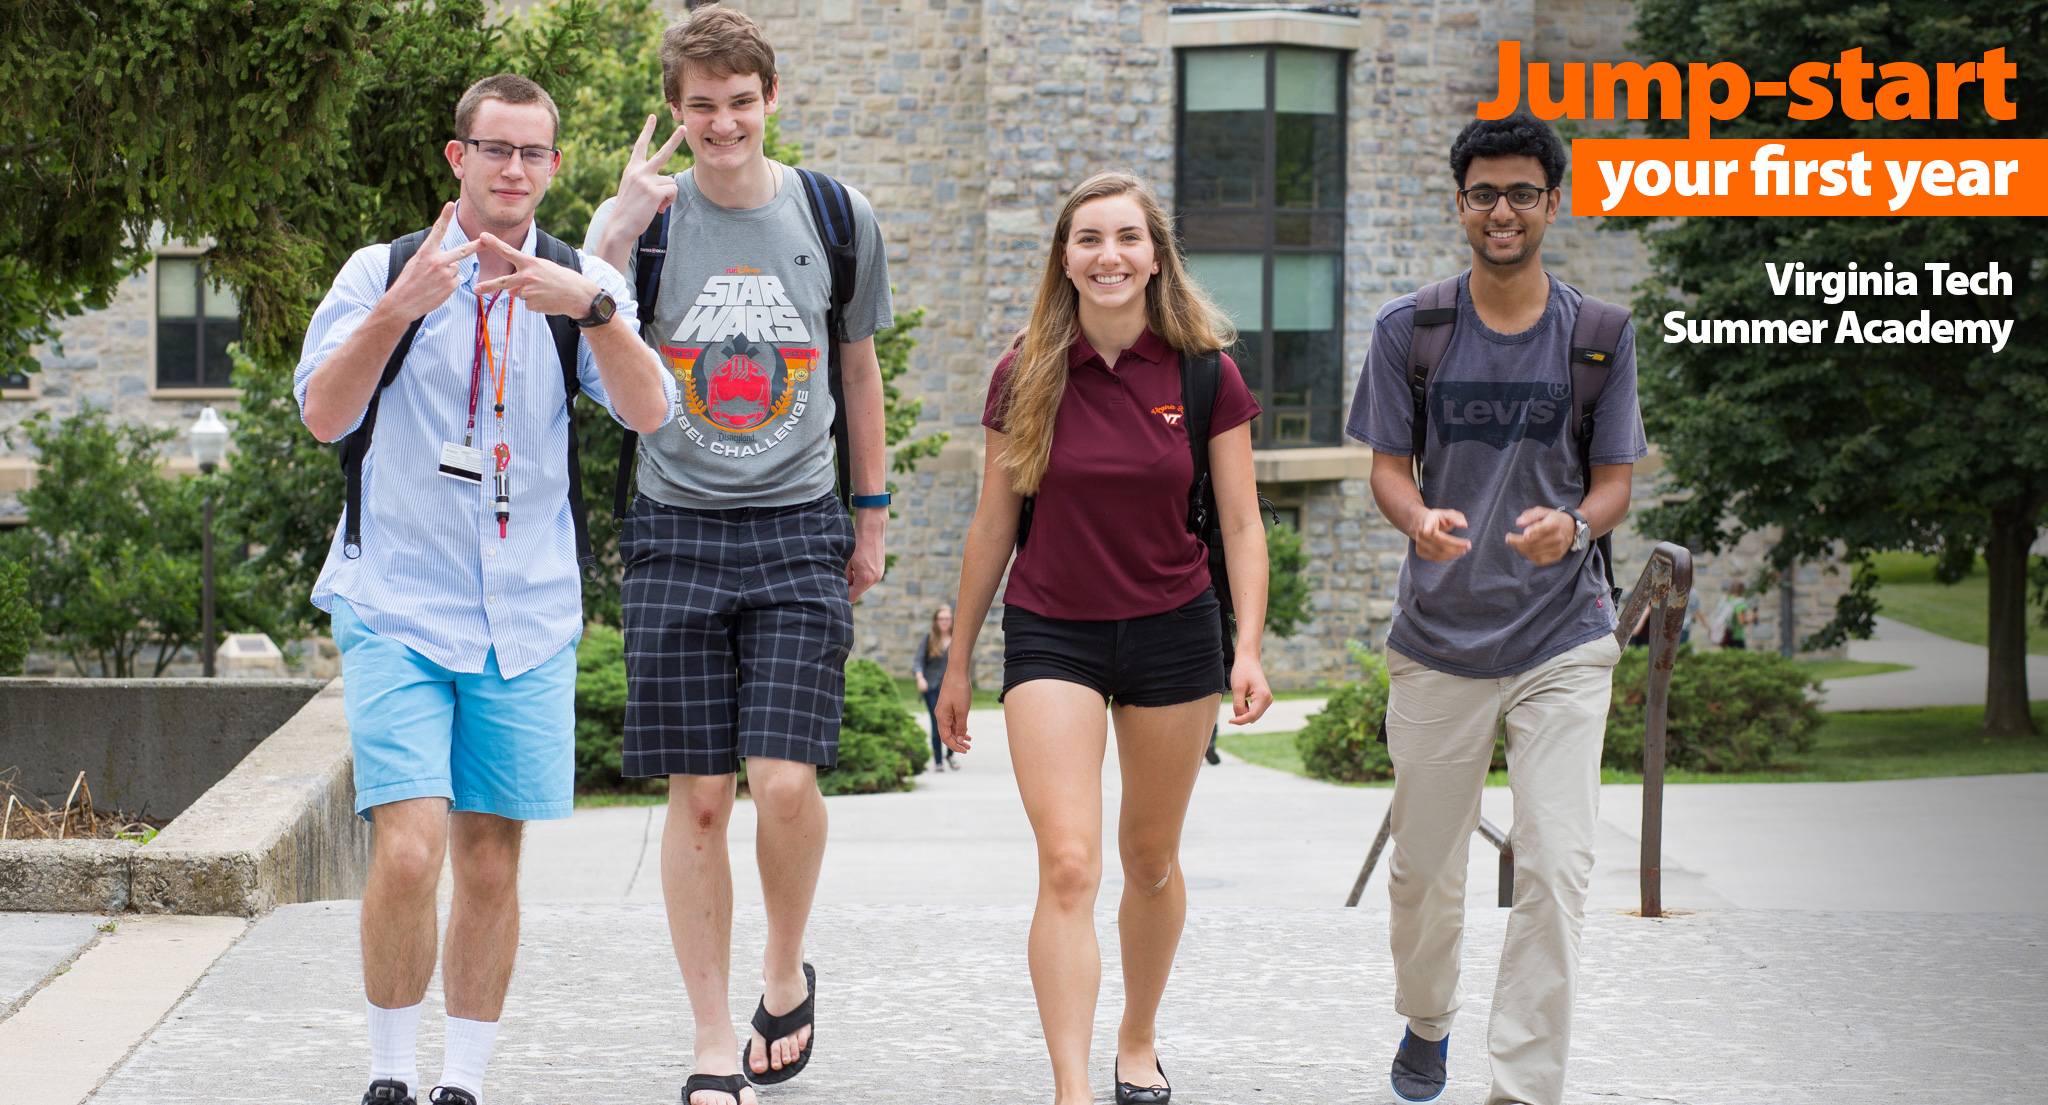 Get to know everything Hokie, early!